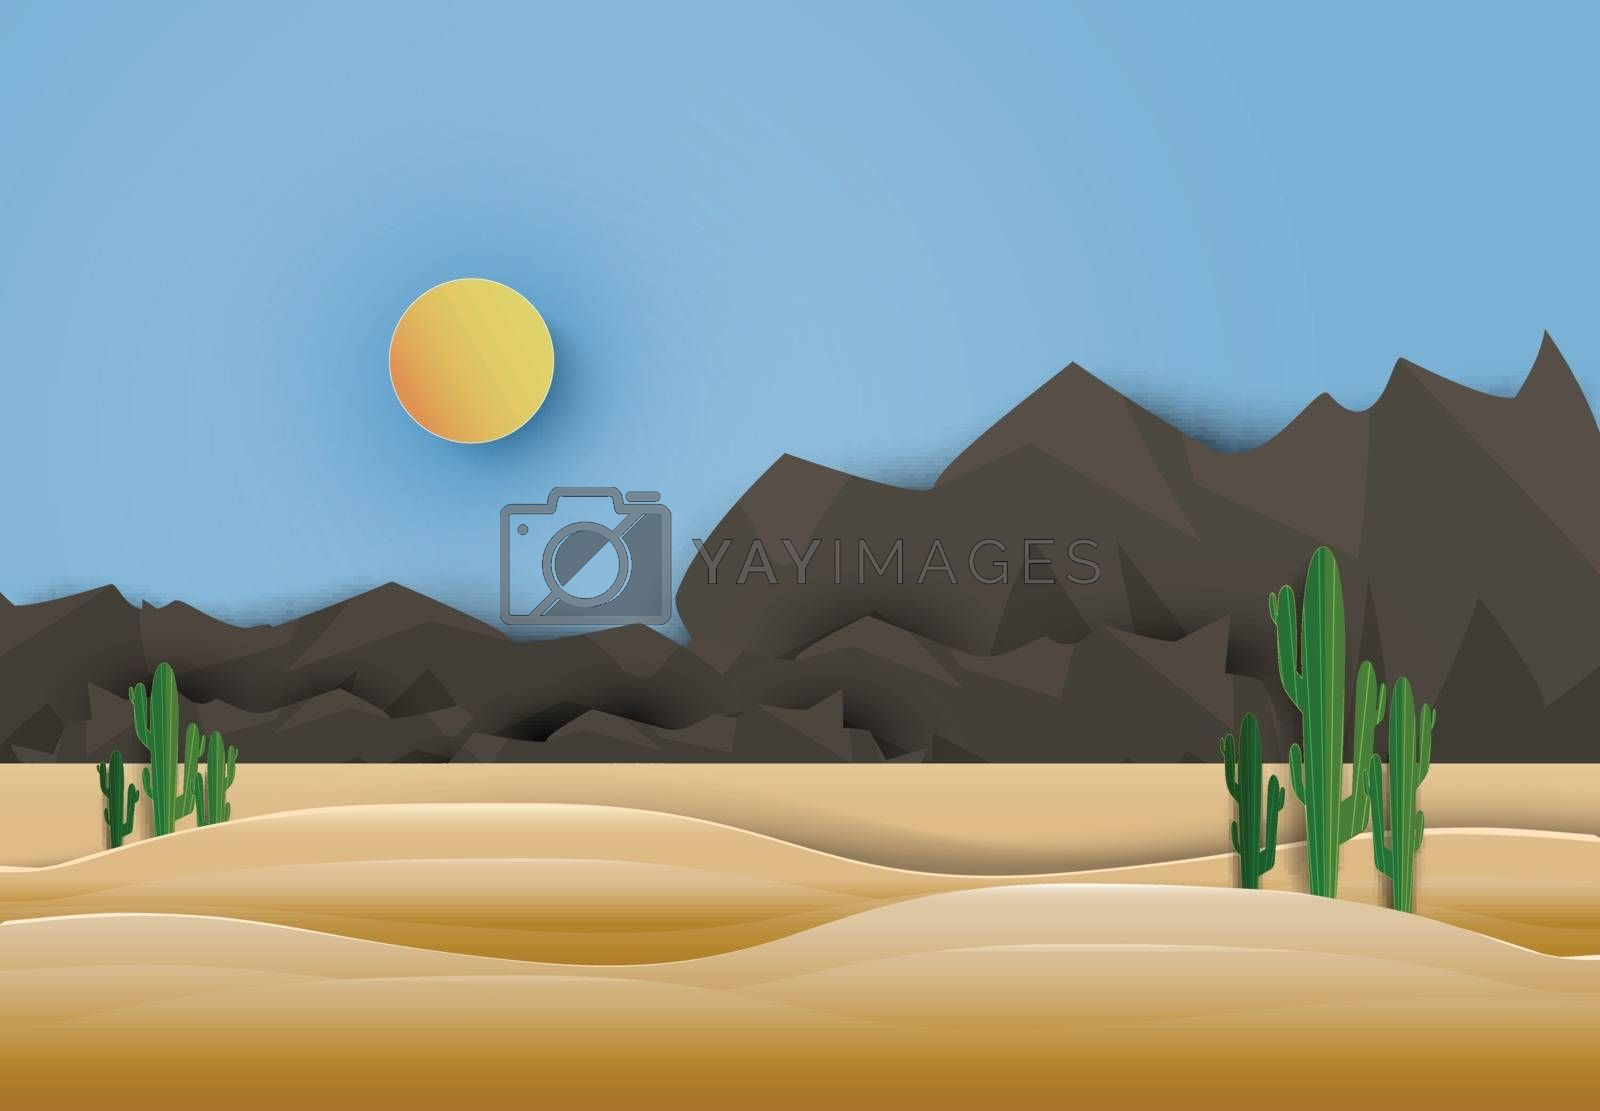 Saguaro Cactus in Western countryside. Paper art style, paper cut illustration